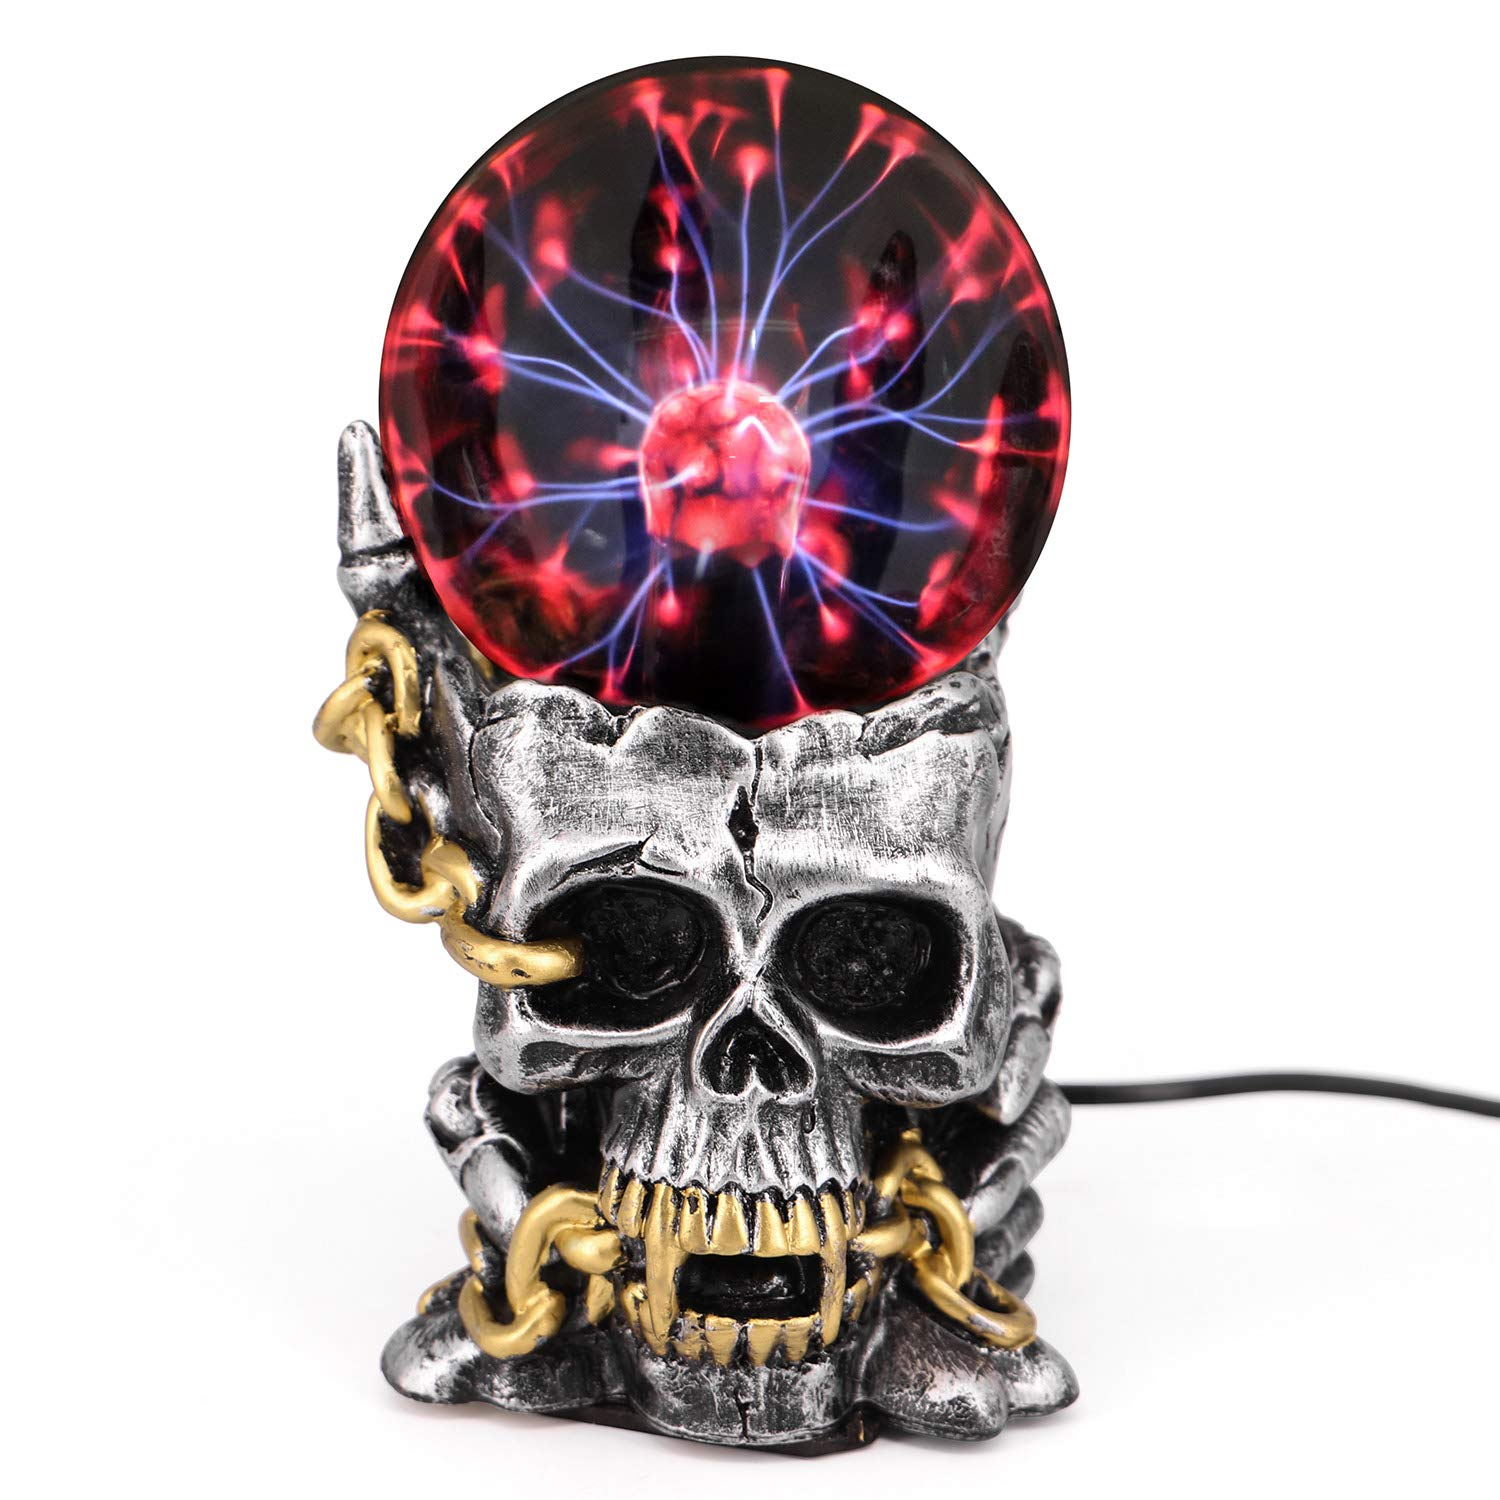 QTKJ Resin Plasma Ball, Skull Head Claw Touch Sensitive Electric Globe Static Light for Home and Party, Holiday Decorations Gifts